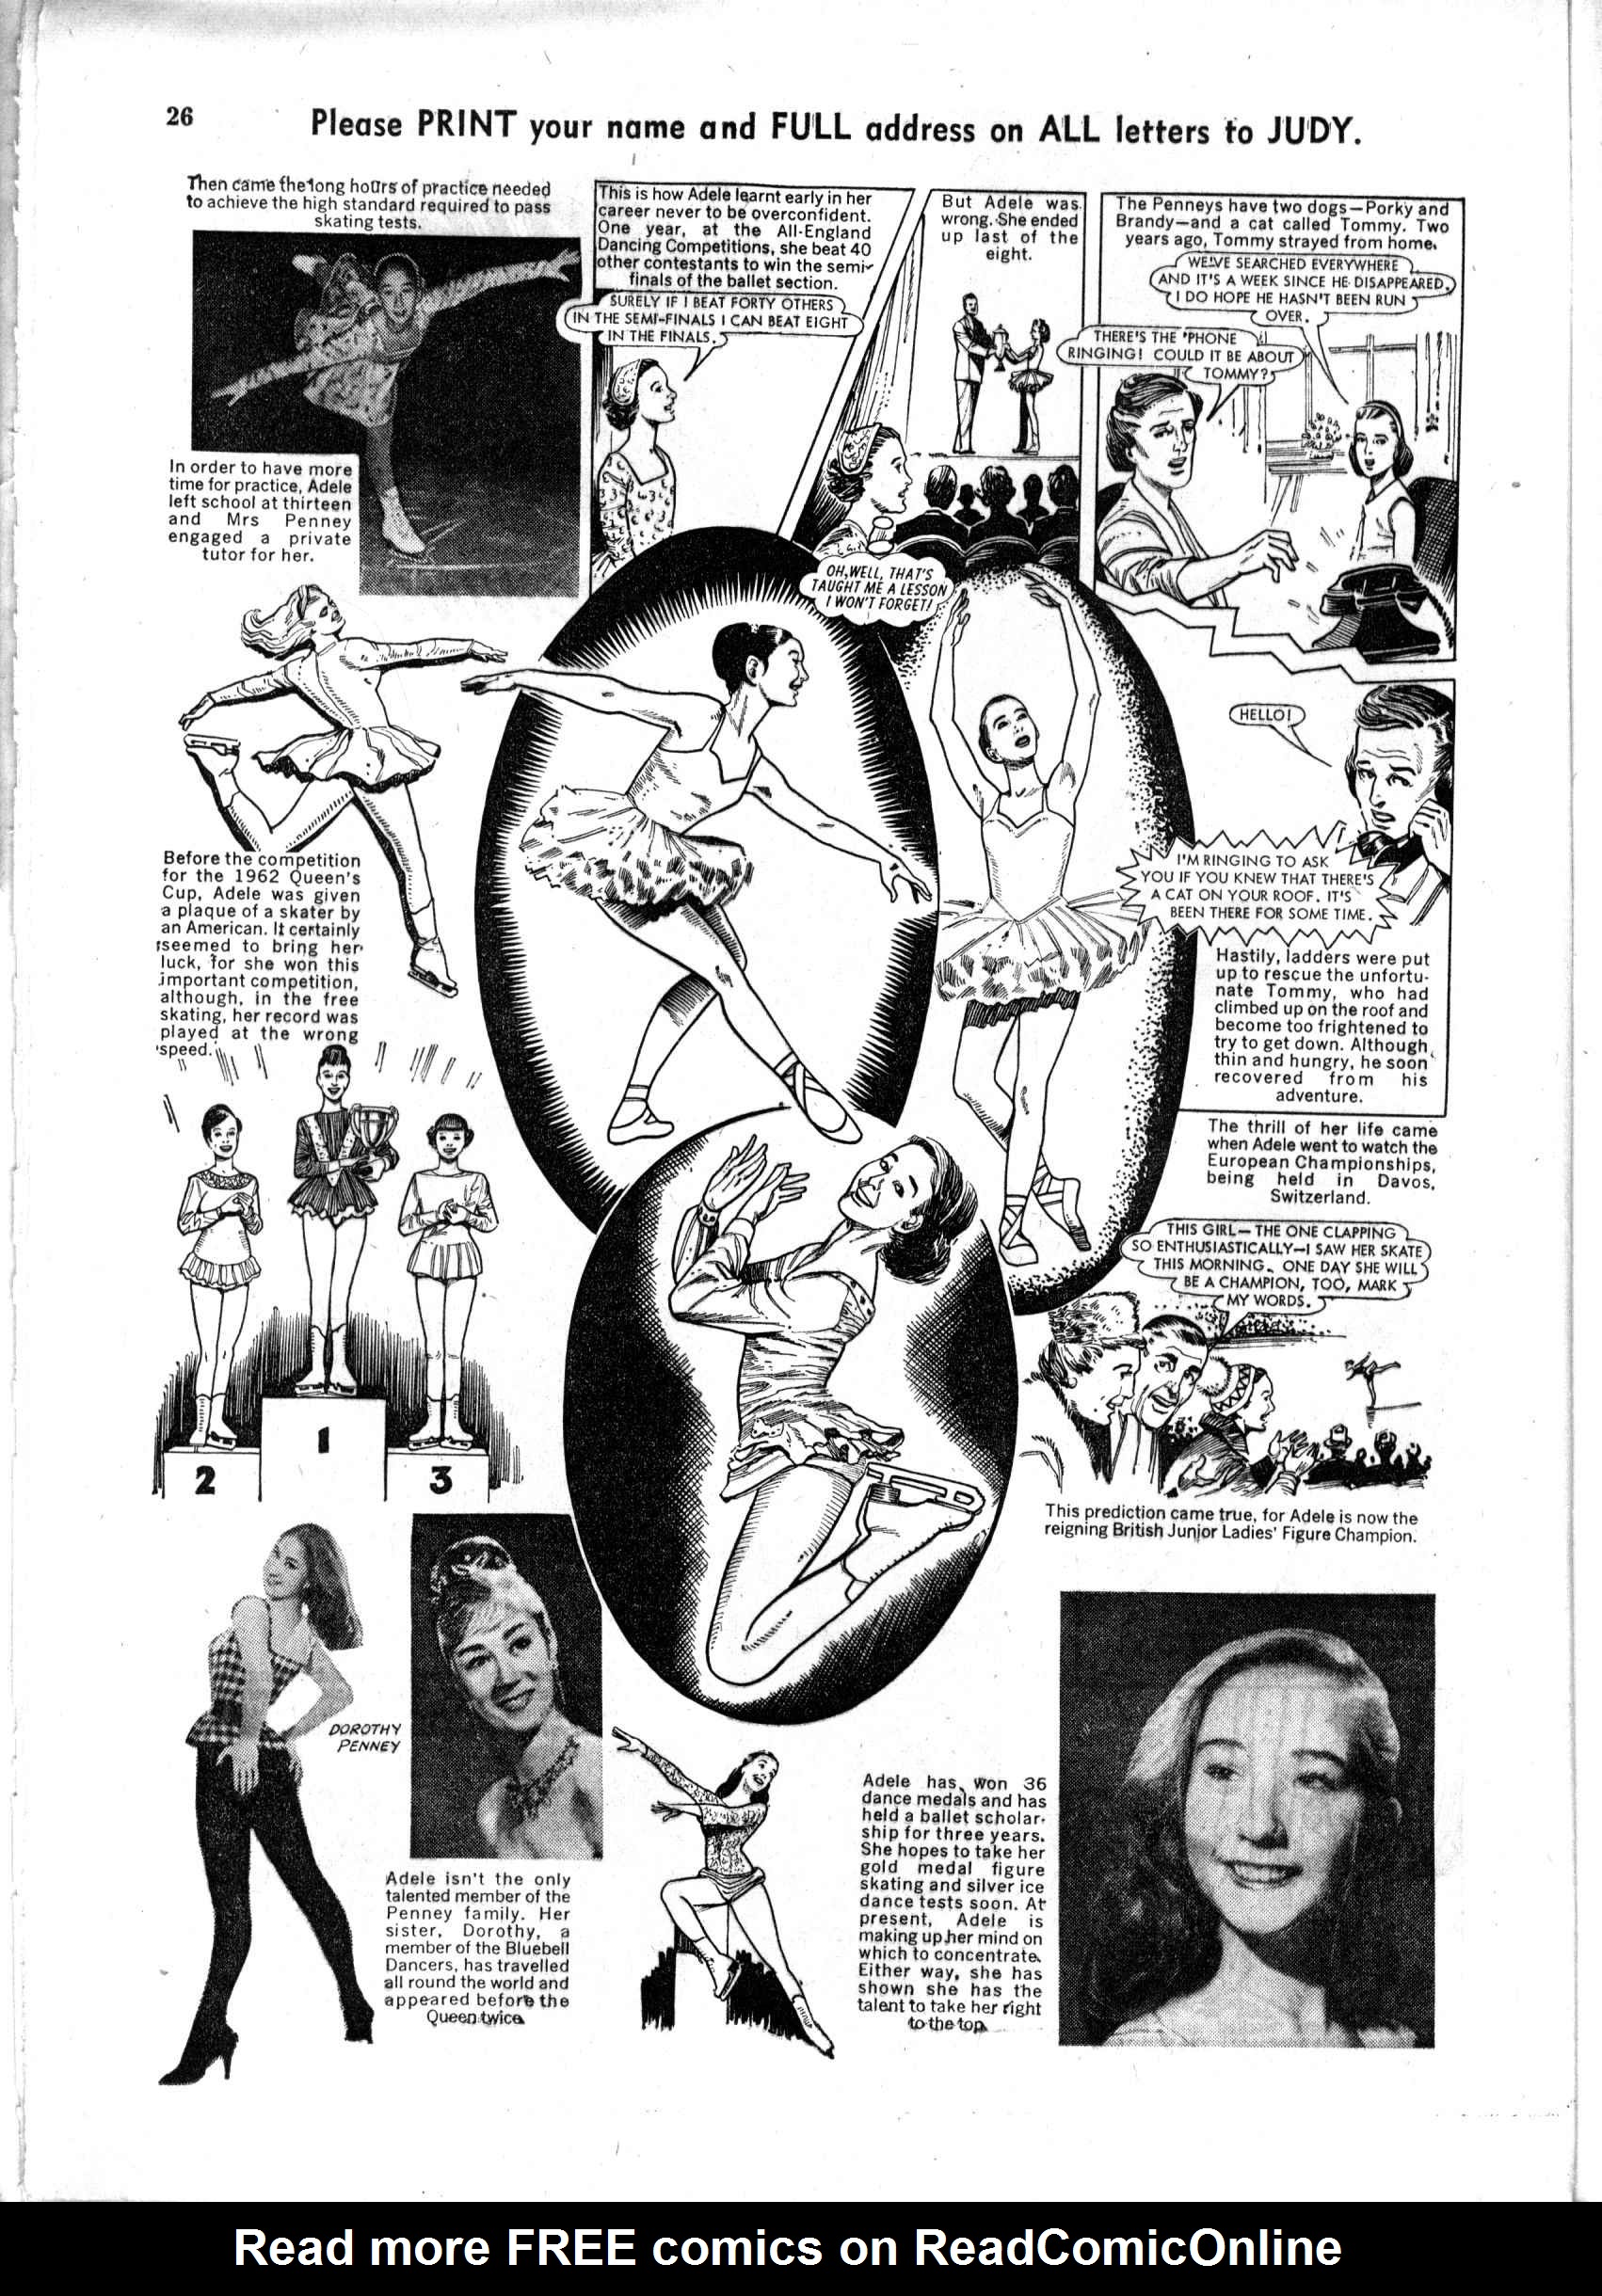 Read online Judy comic -  Issue #193 - 26